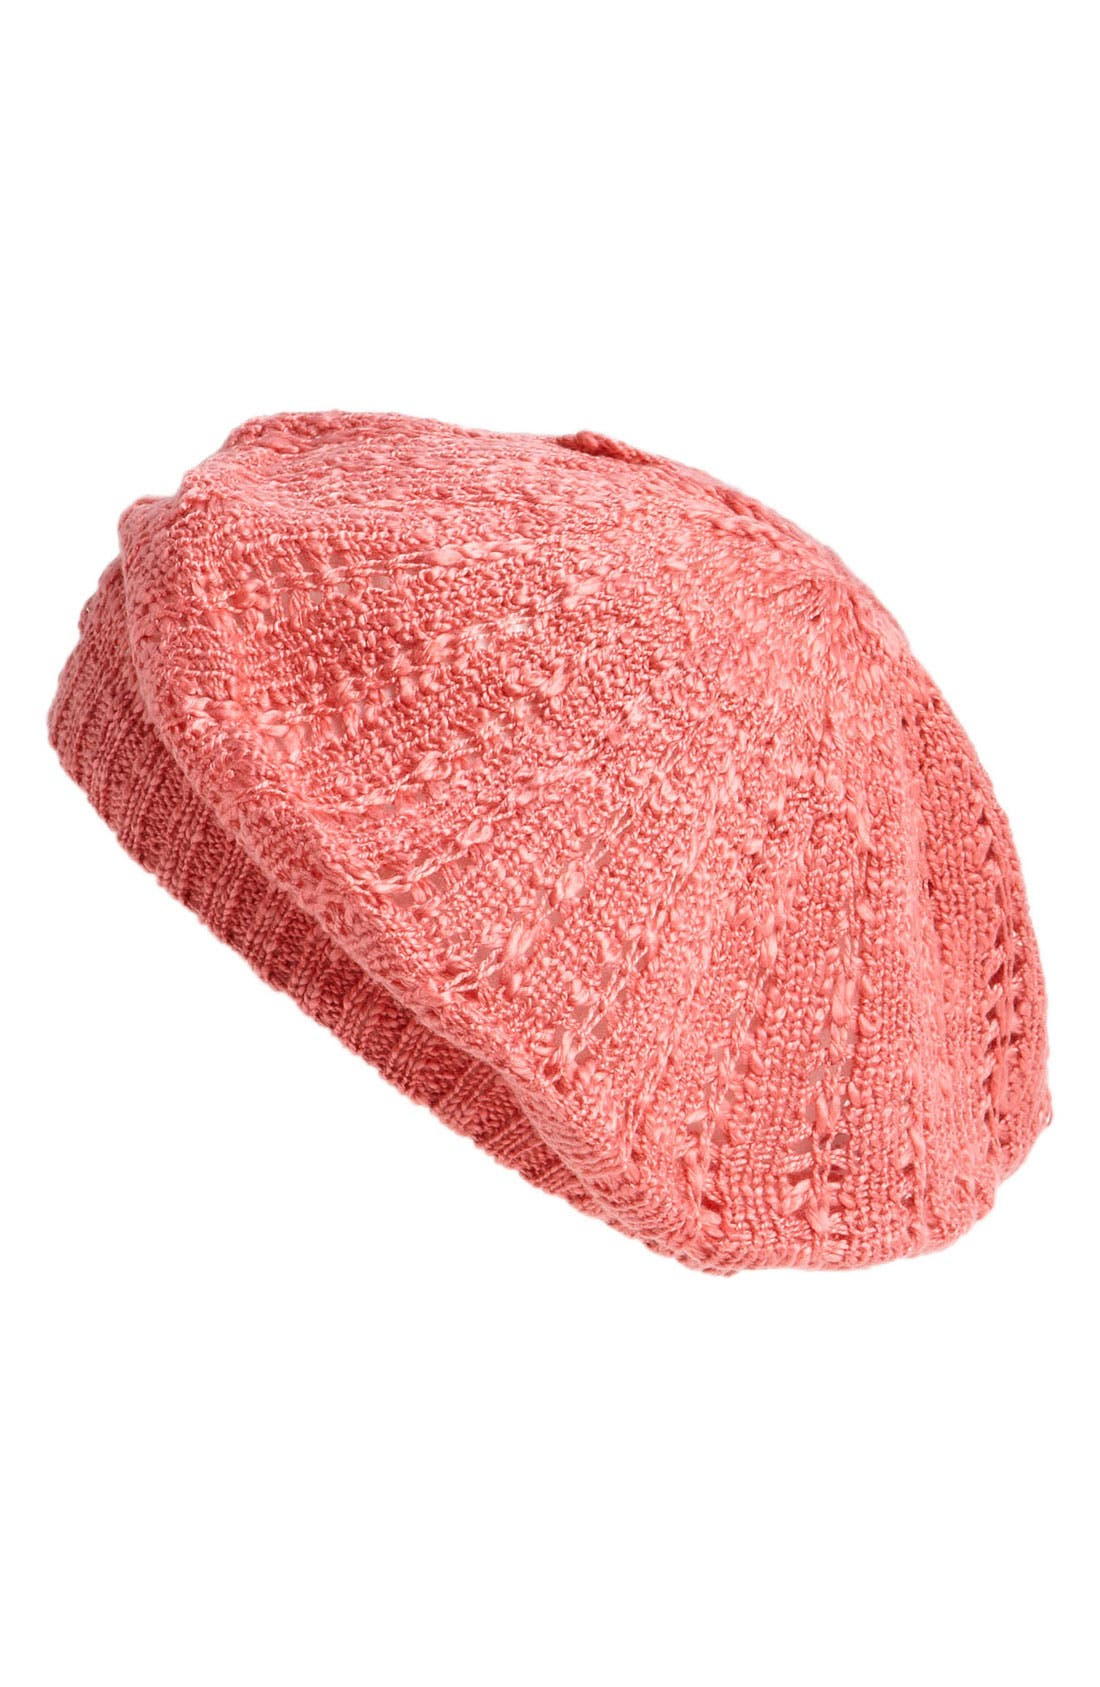 Main Image - BP. Featherweight Knit Beret